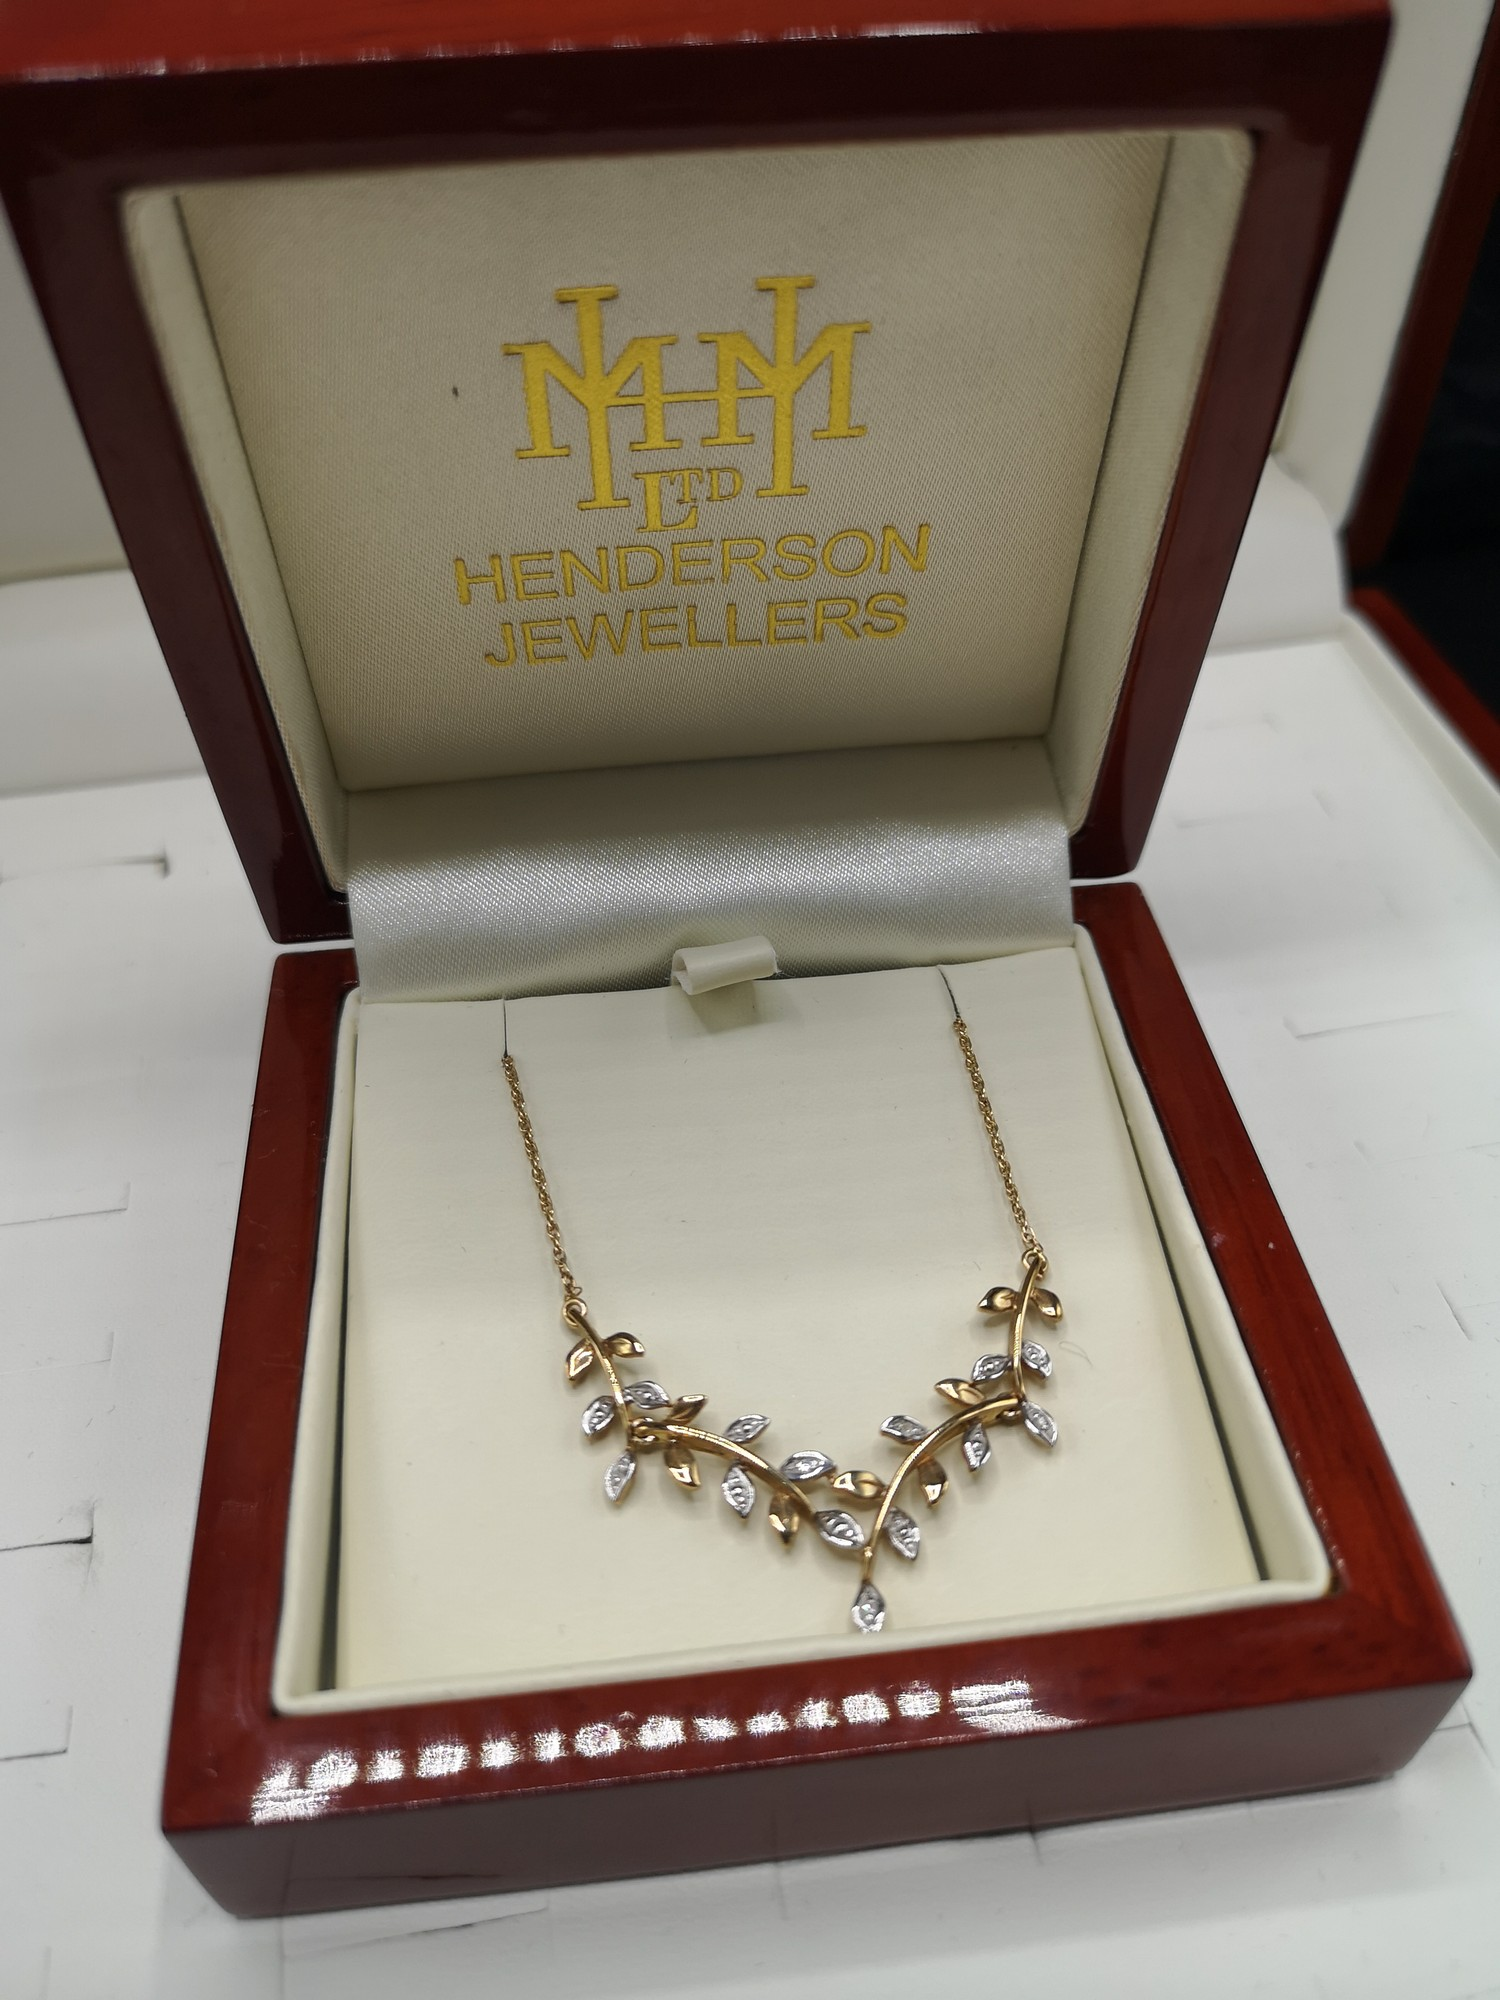 9ct gold necklace set with diamond chip . Tested as diamond s. - Image 2 of 2